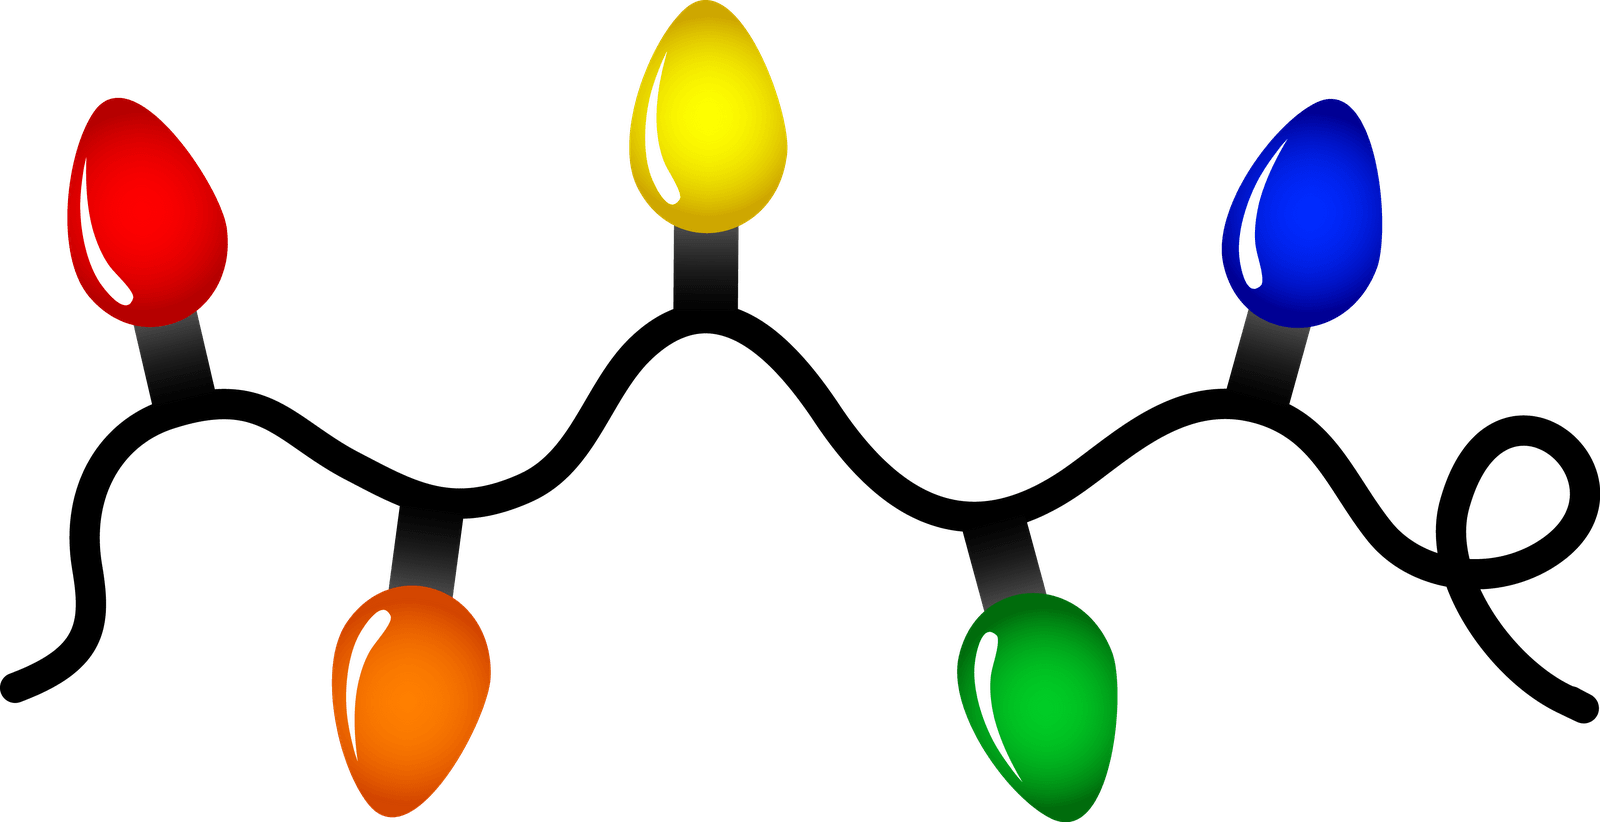 christmas-lights-clipart-eTMKBMATn